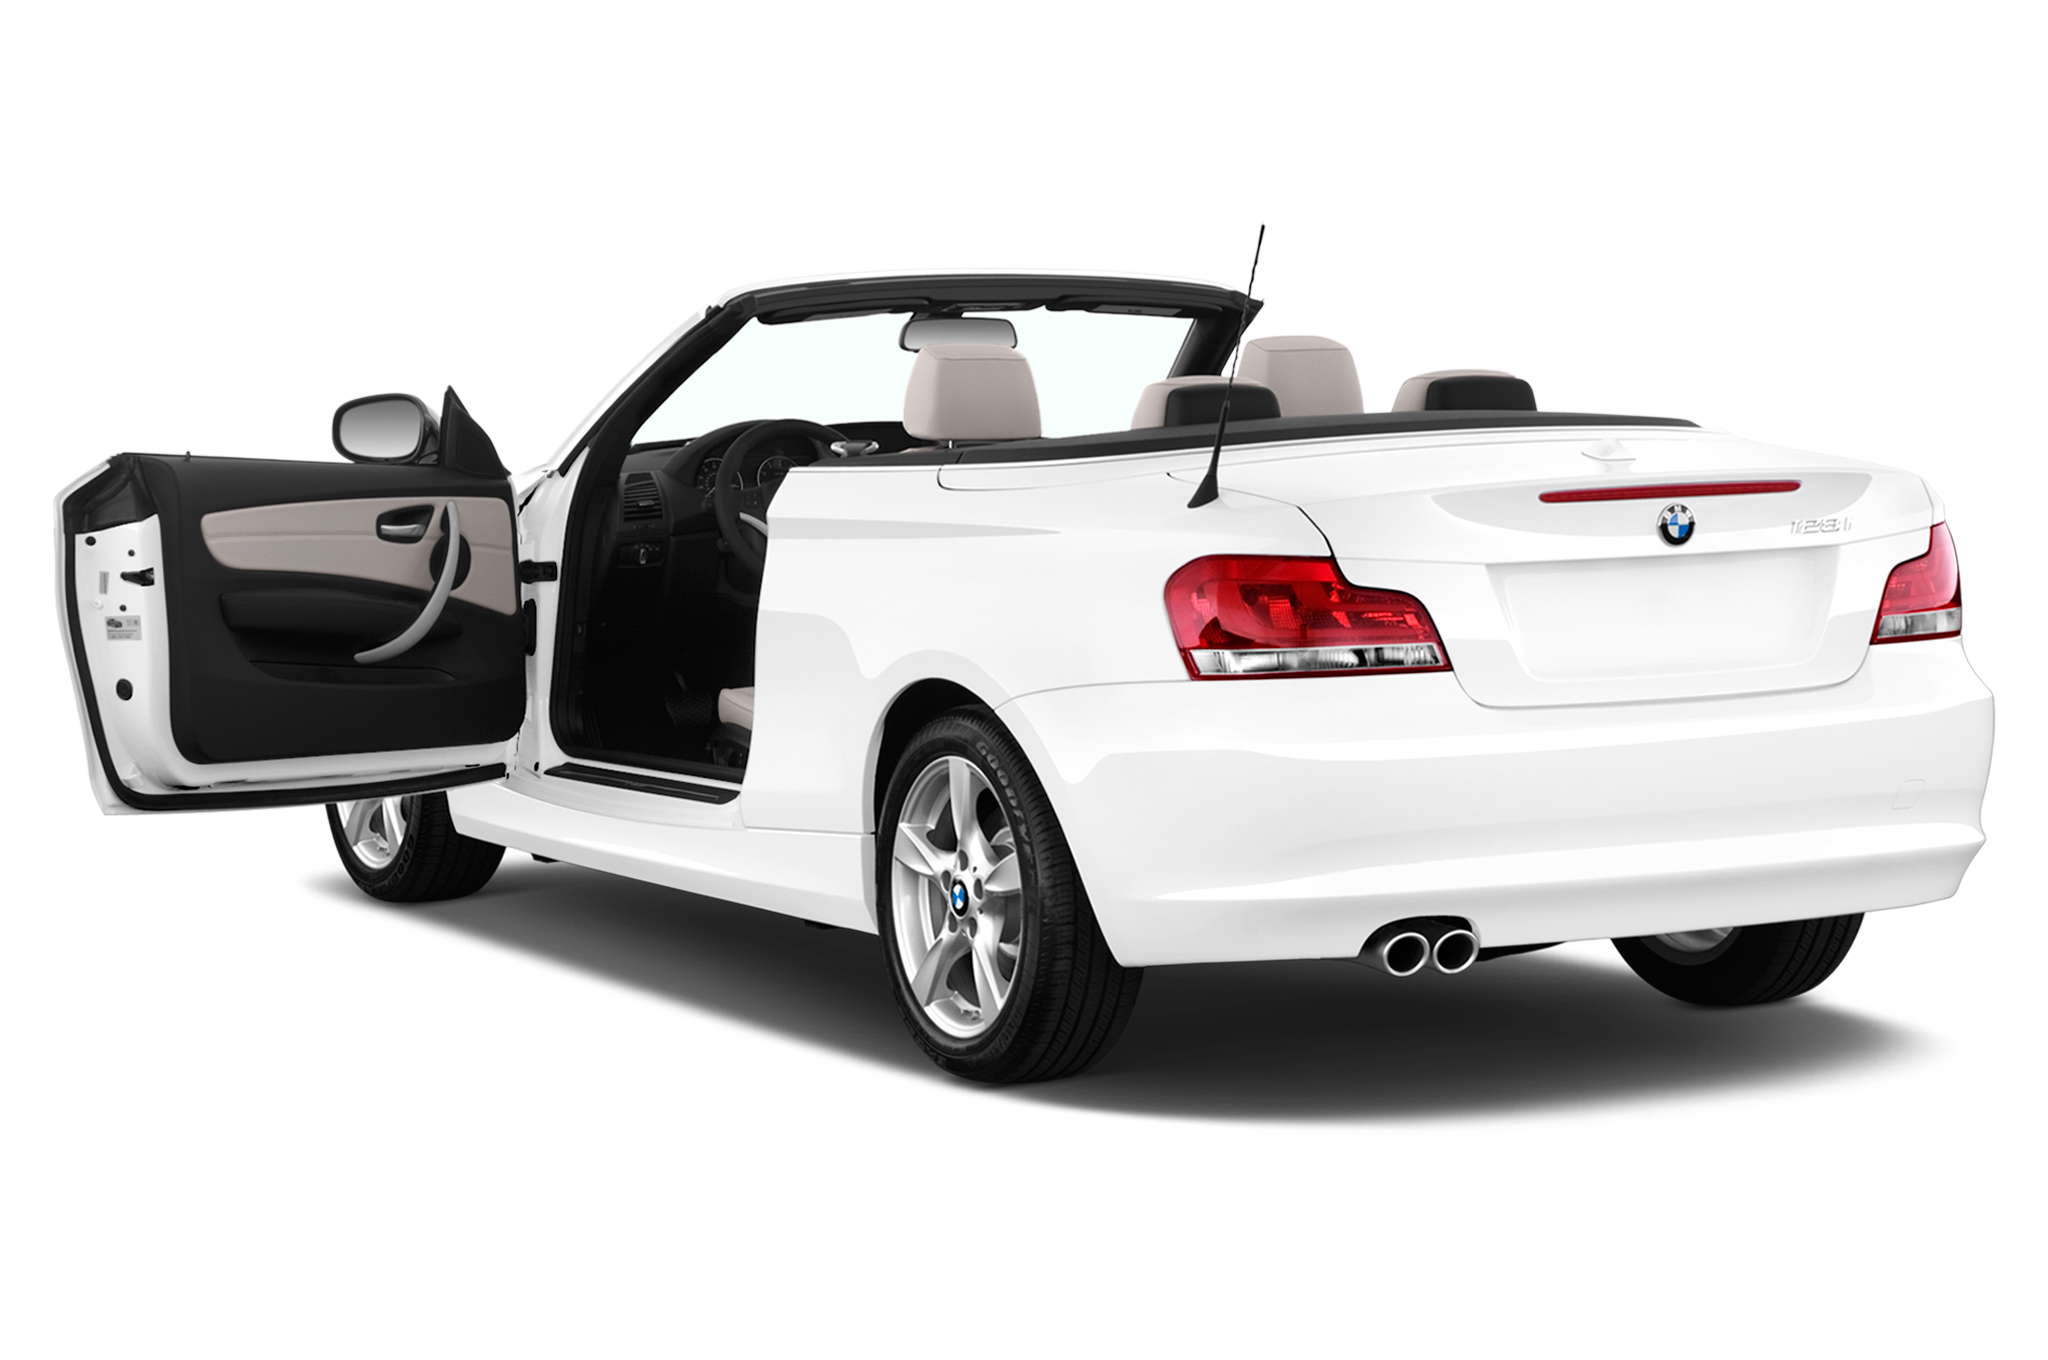 2012 BMW 1 Series Coupe Convertible Gain Light Changes